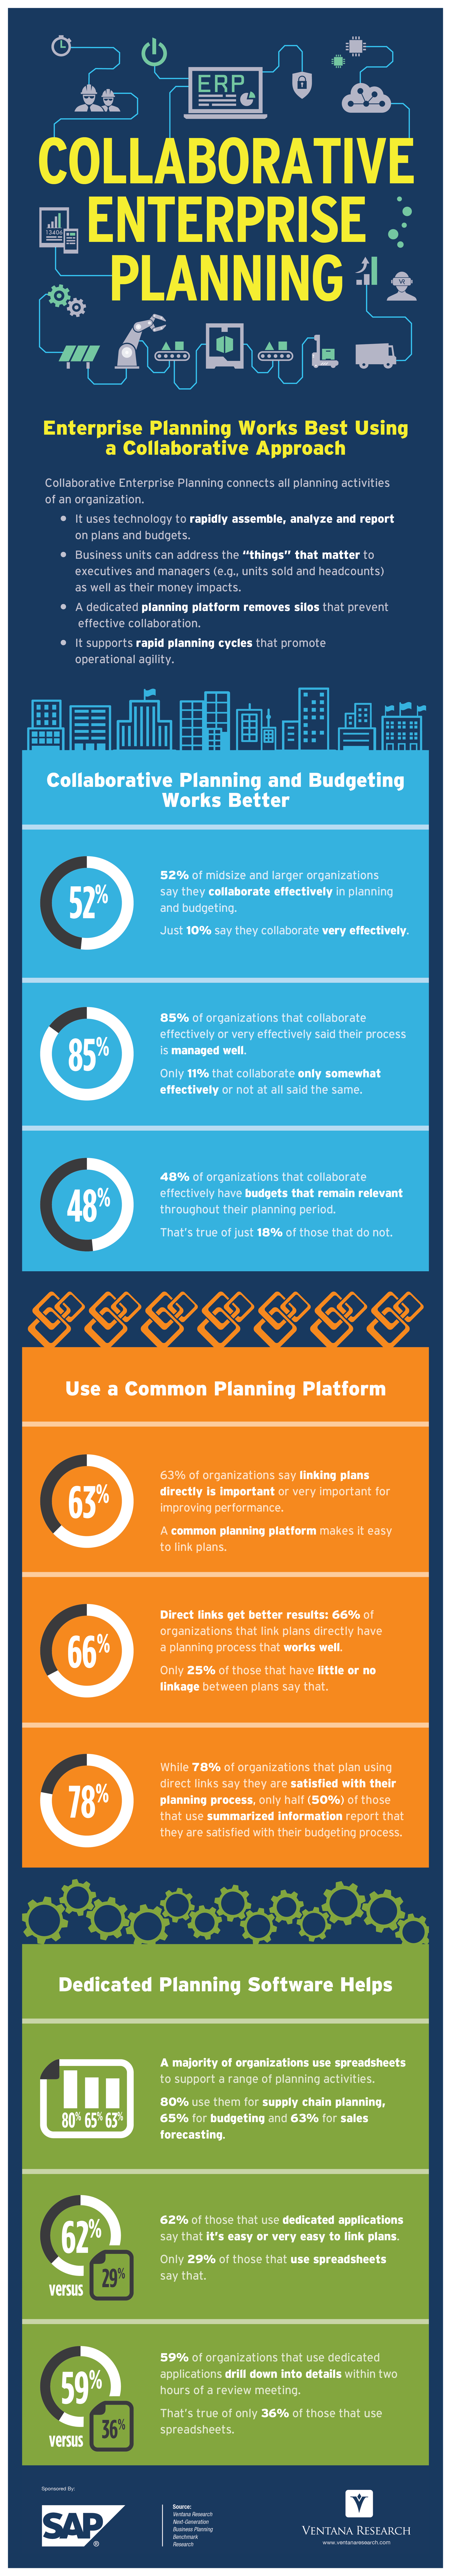 Enterprise Planning Works best Using a Collaborative Approach